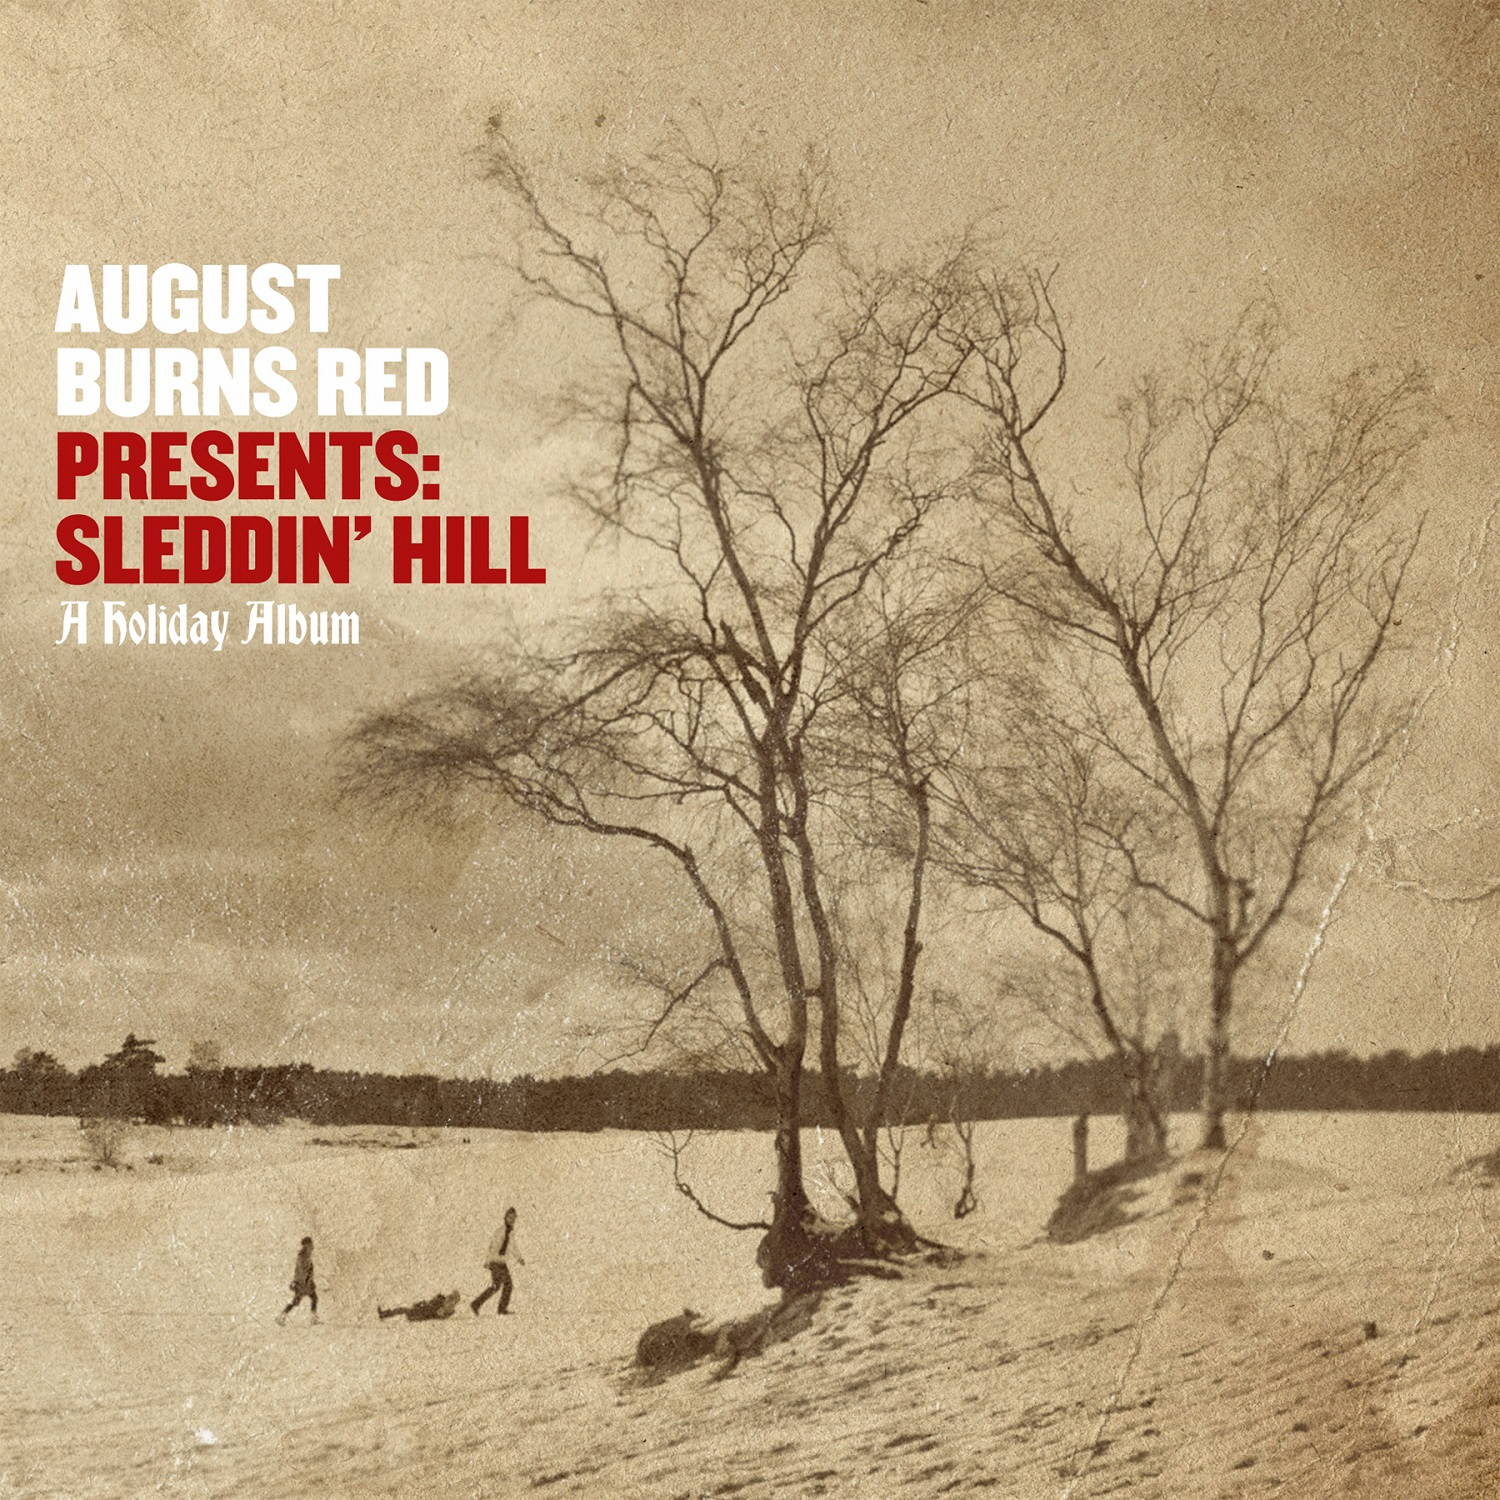 August Burns Red - Sleddin' Hill, A Holiday Album (2012)